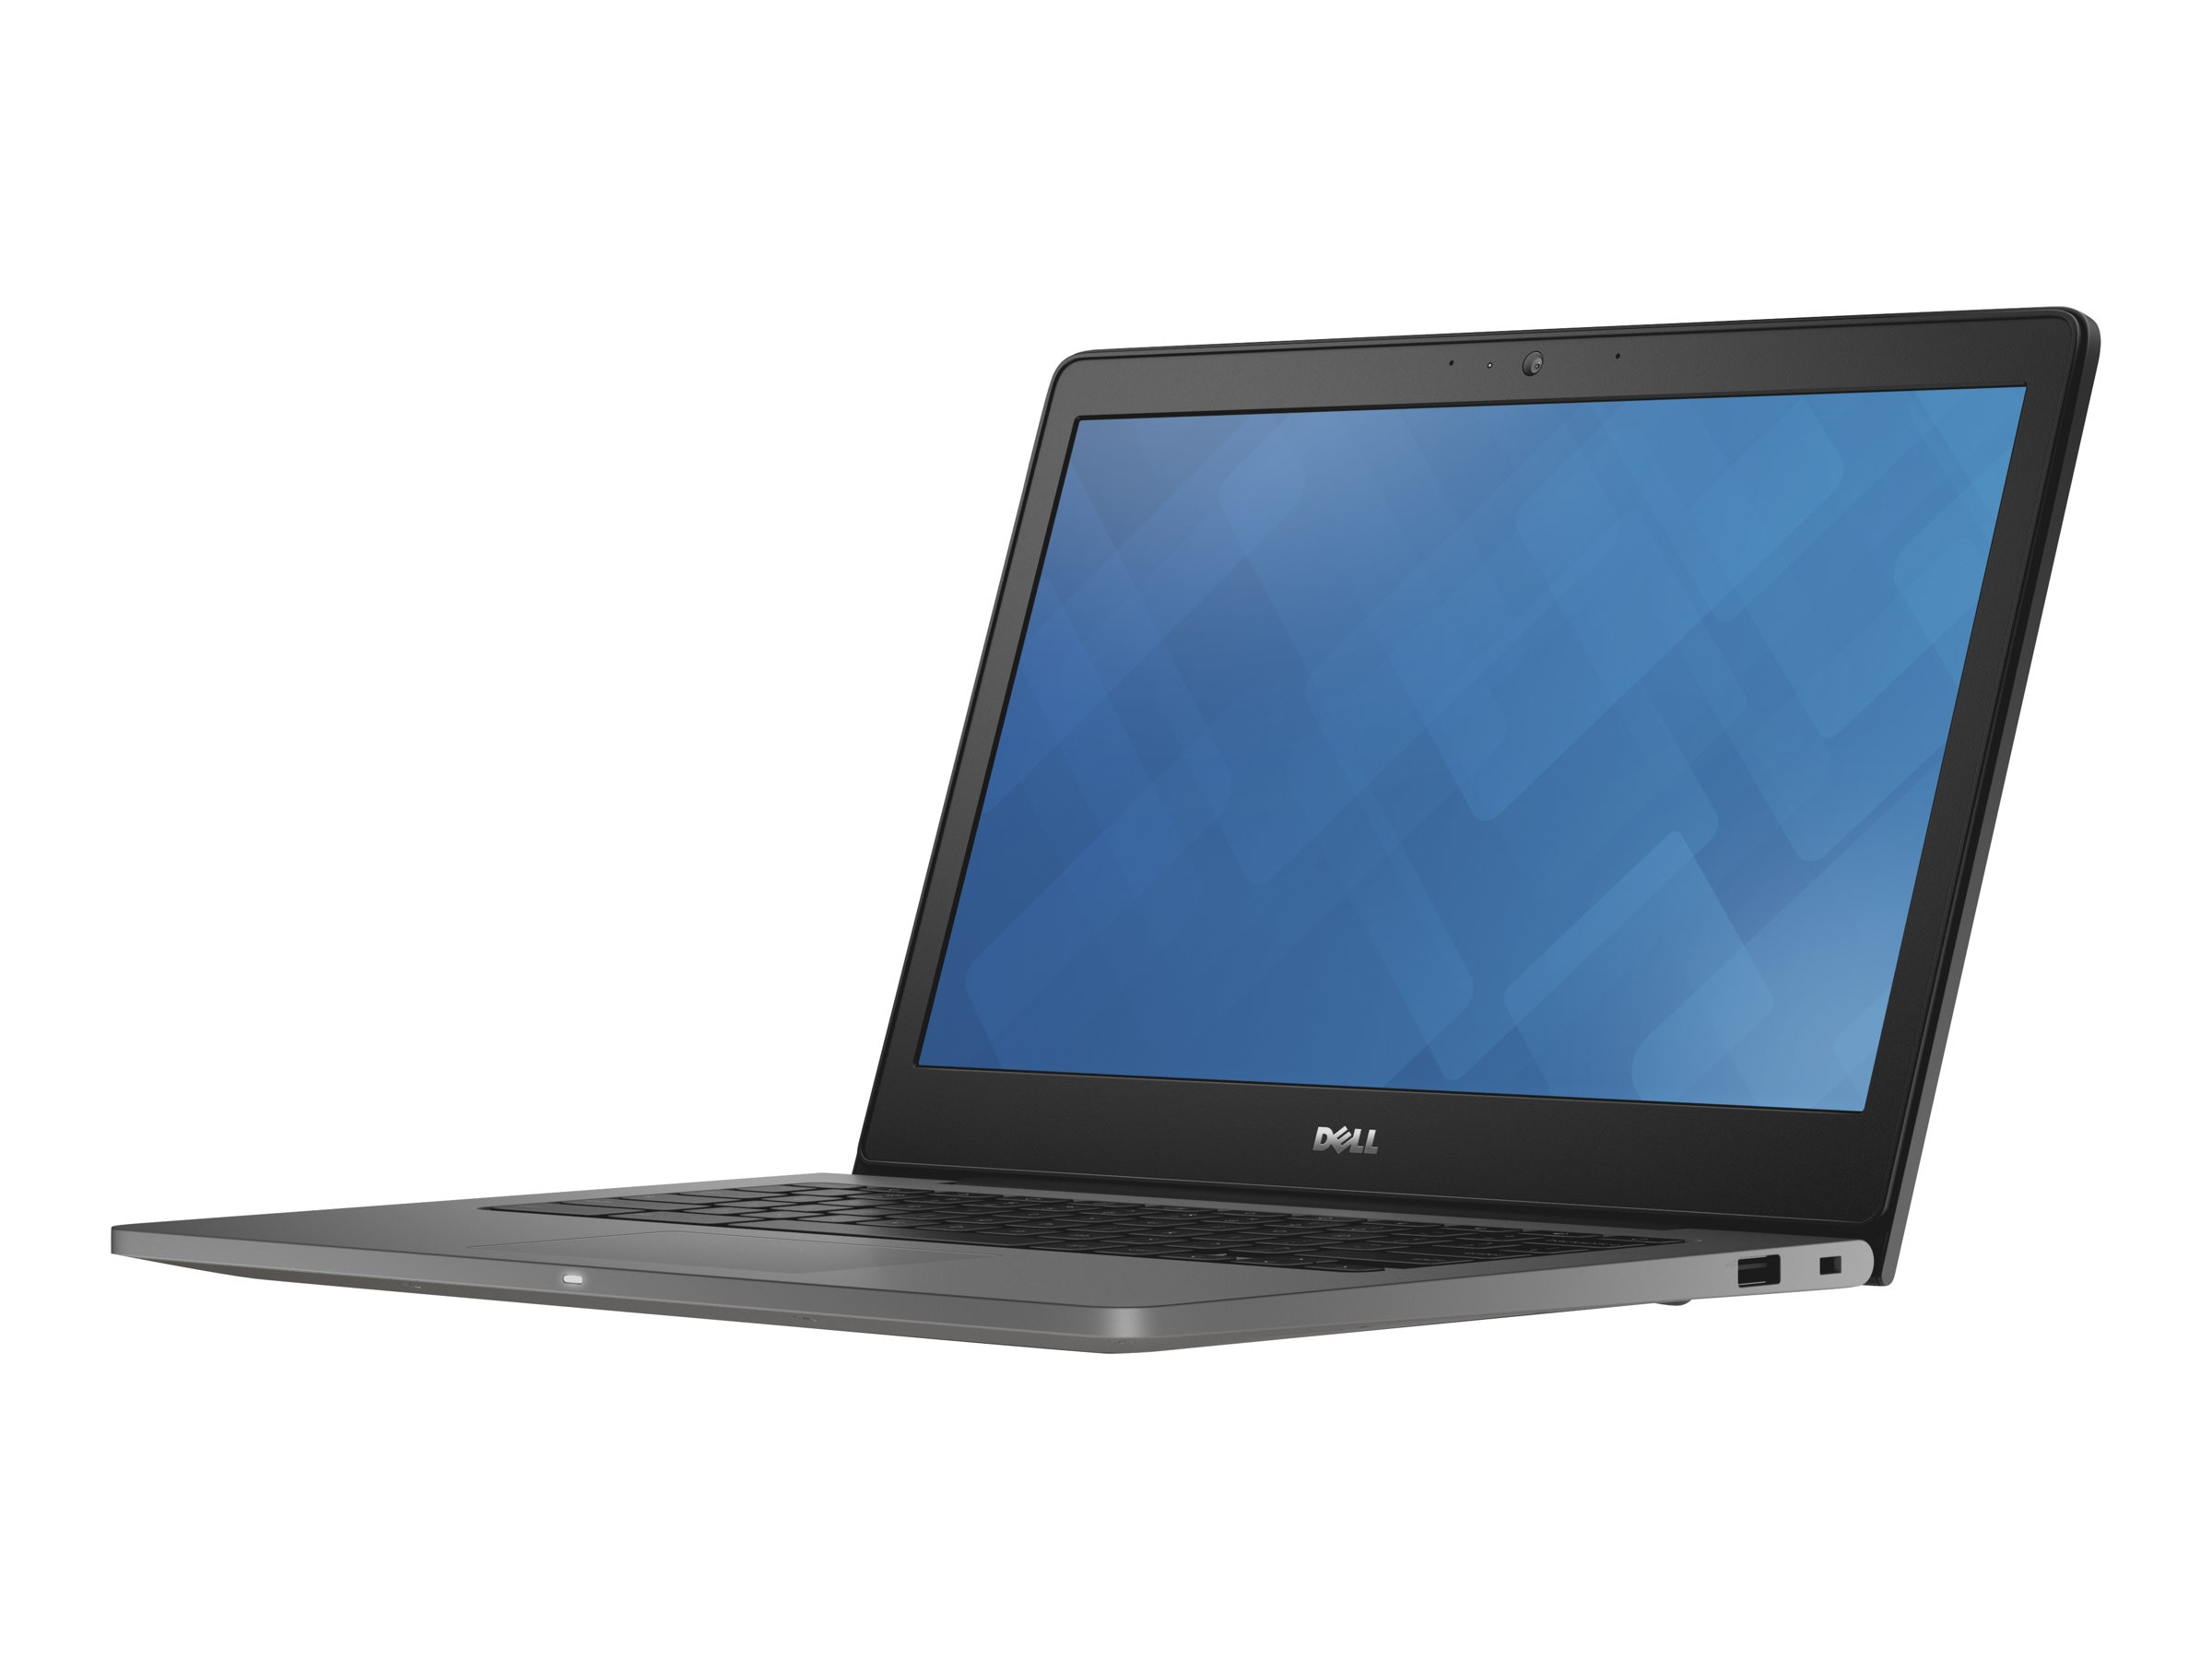 Dell Chromebook 13 Core i3-5005U 4GB 16GB ac BT 6C 13.3 FHD Chrome OS